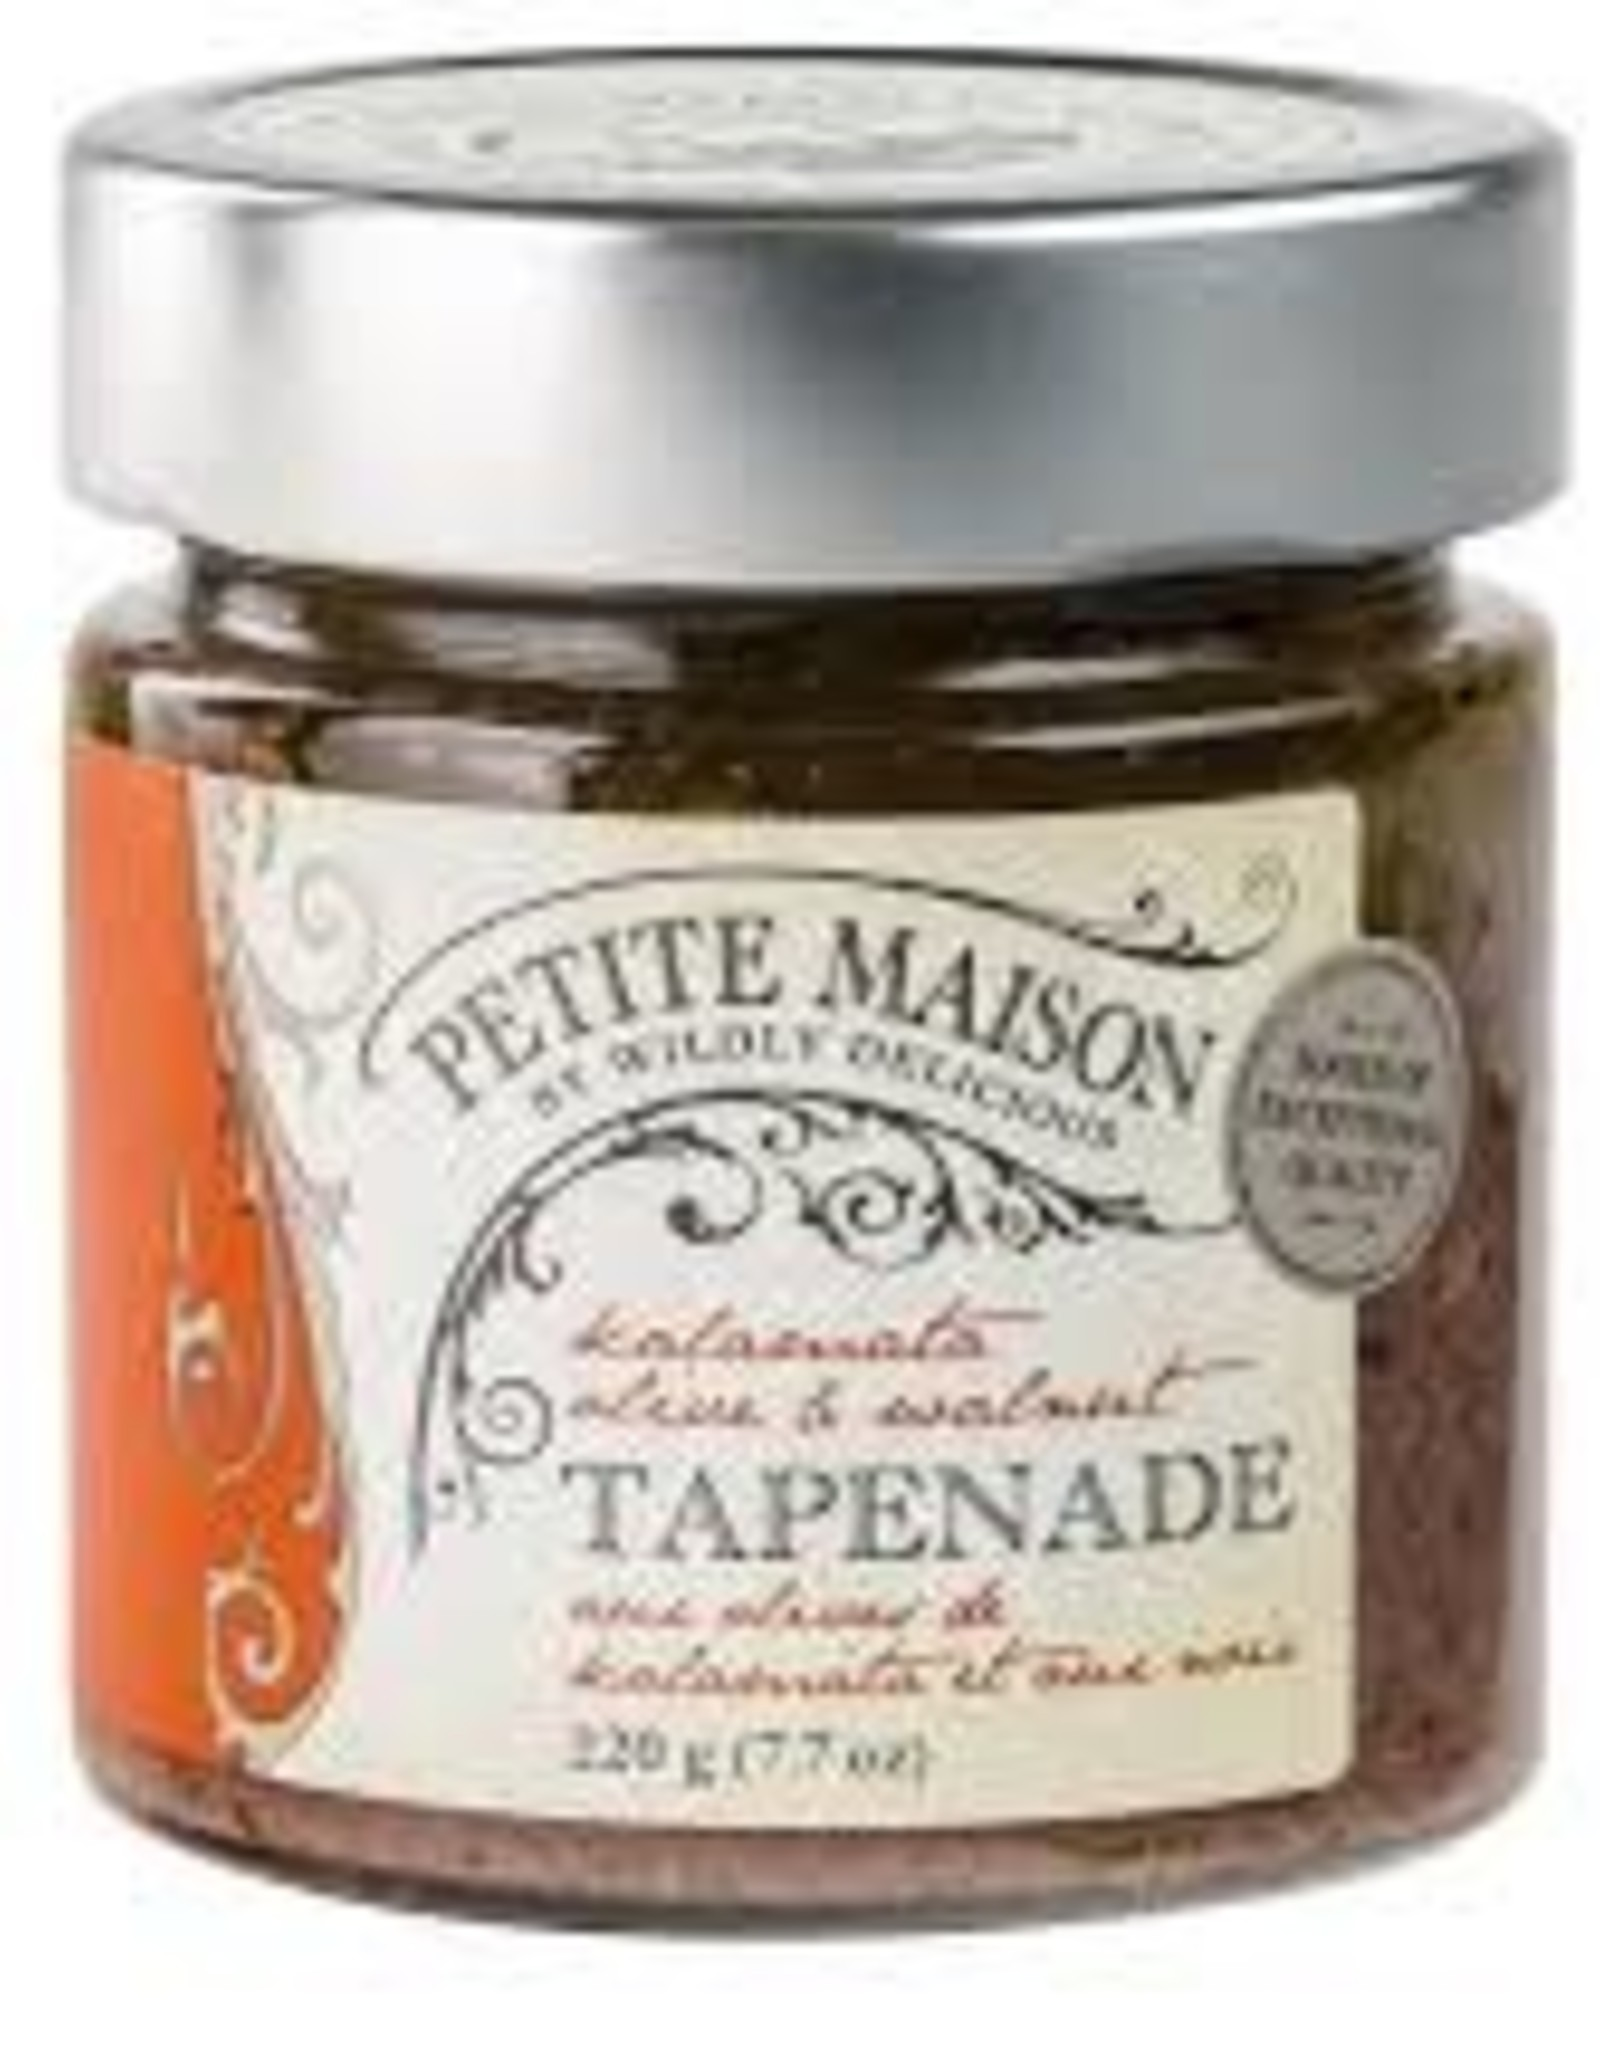 Wildly Delicious Black Olive & Walnut Tapendade